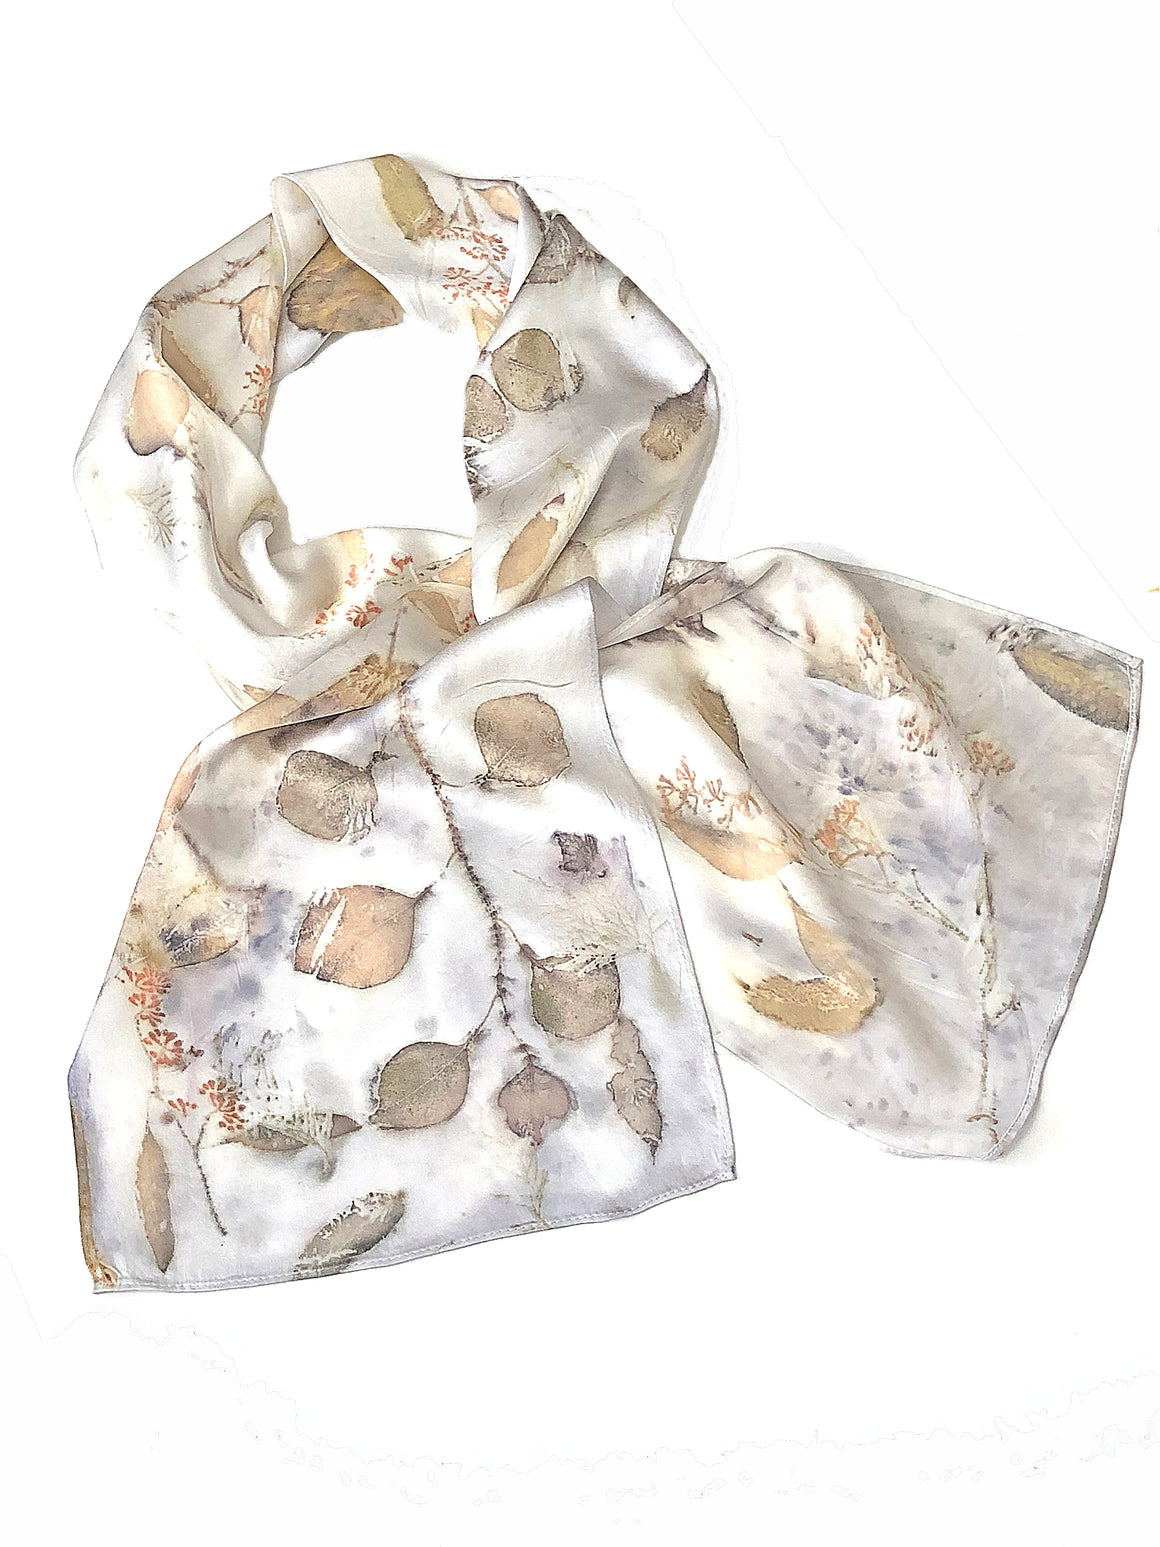 Hand-Dyed Nature's Diary Silk Scarf - Snow Cap White — By Sara Griego